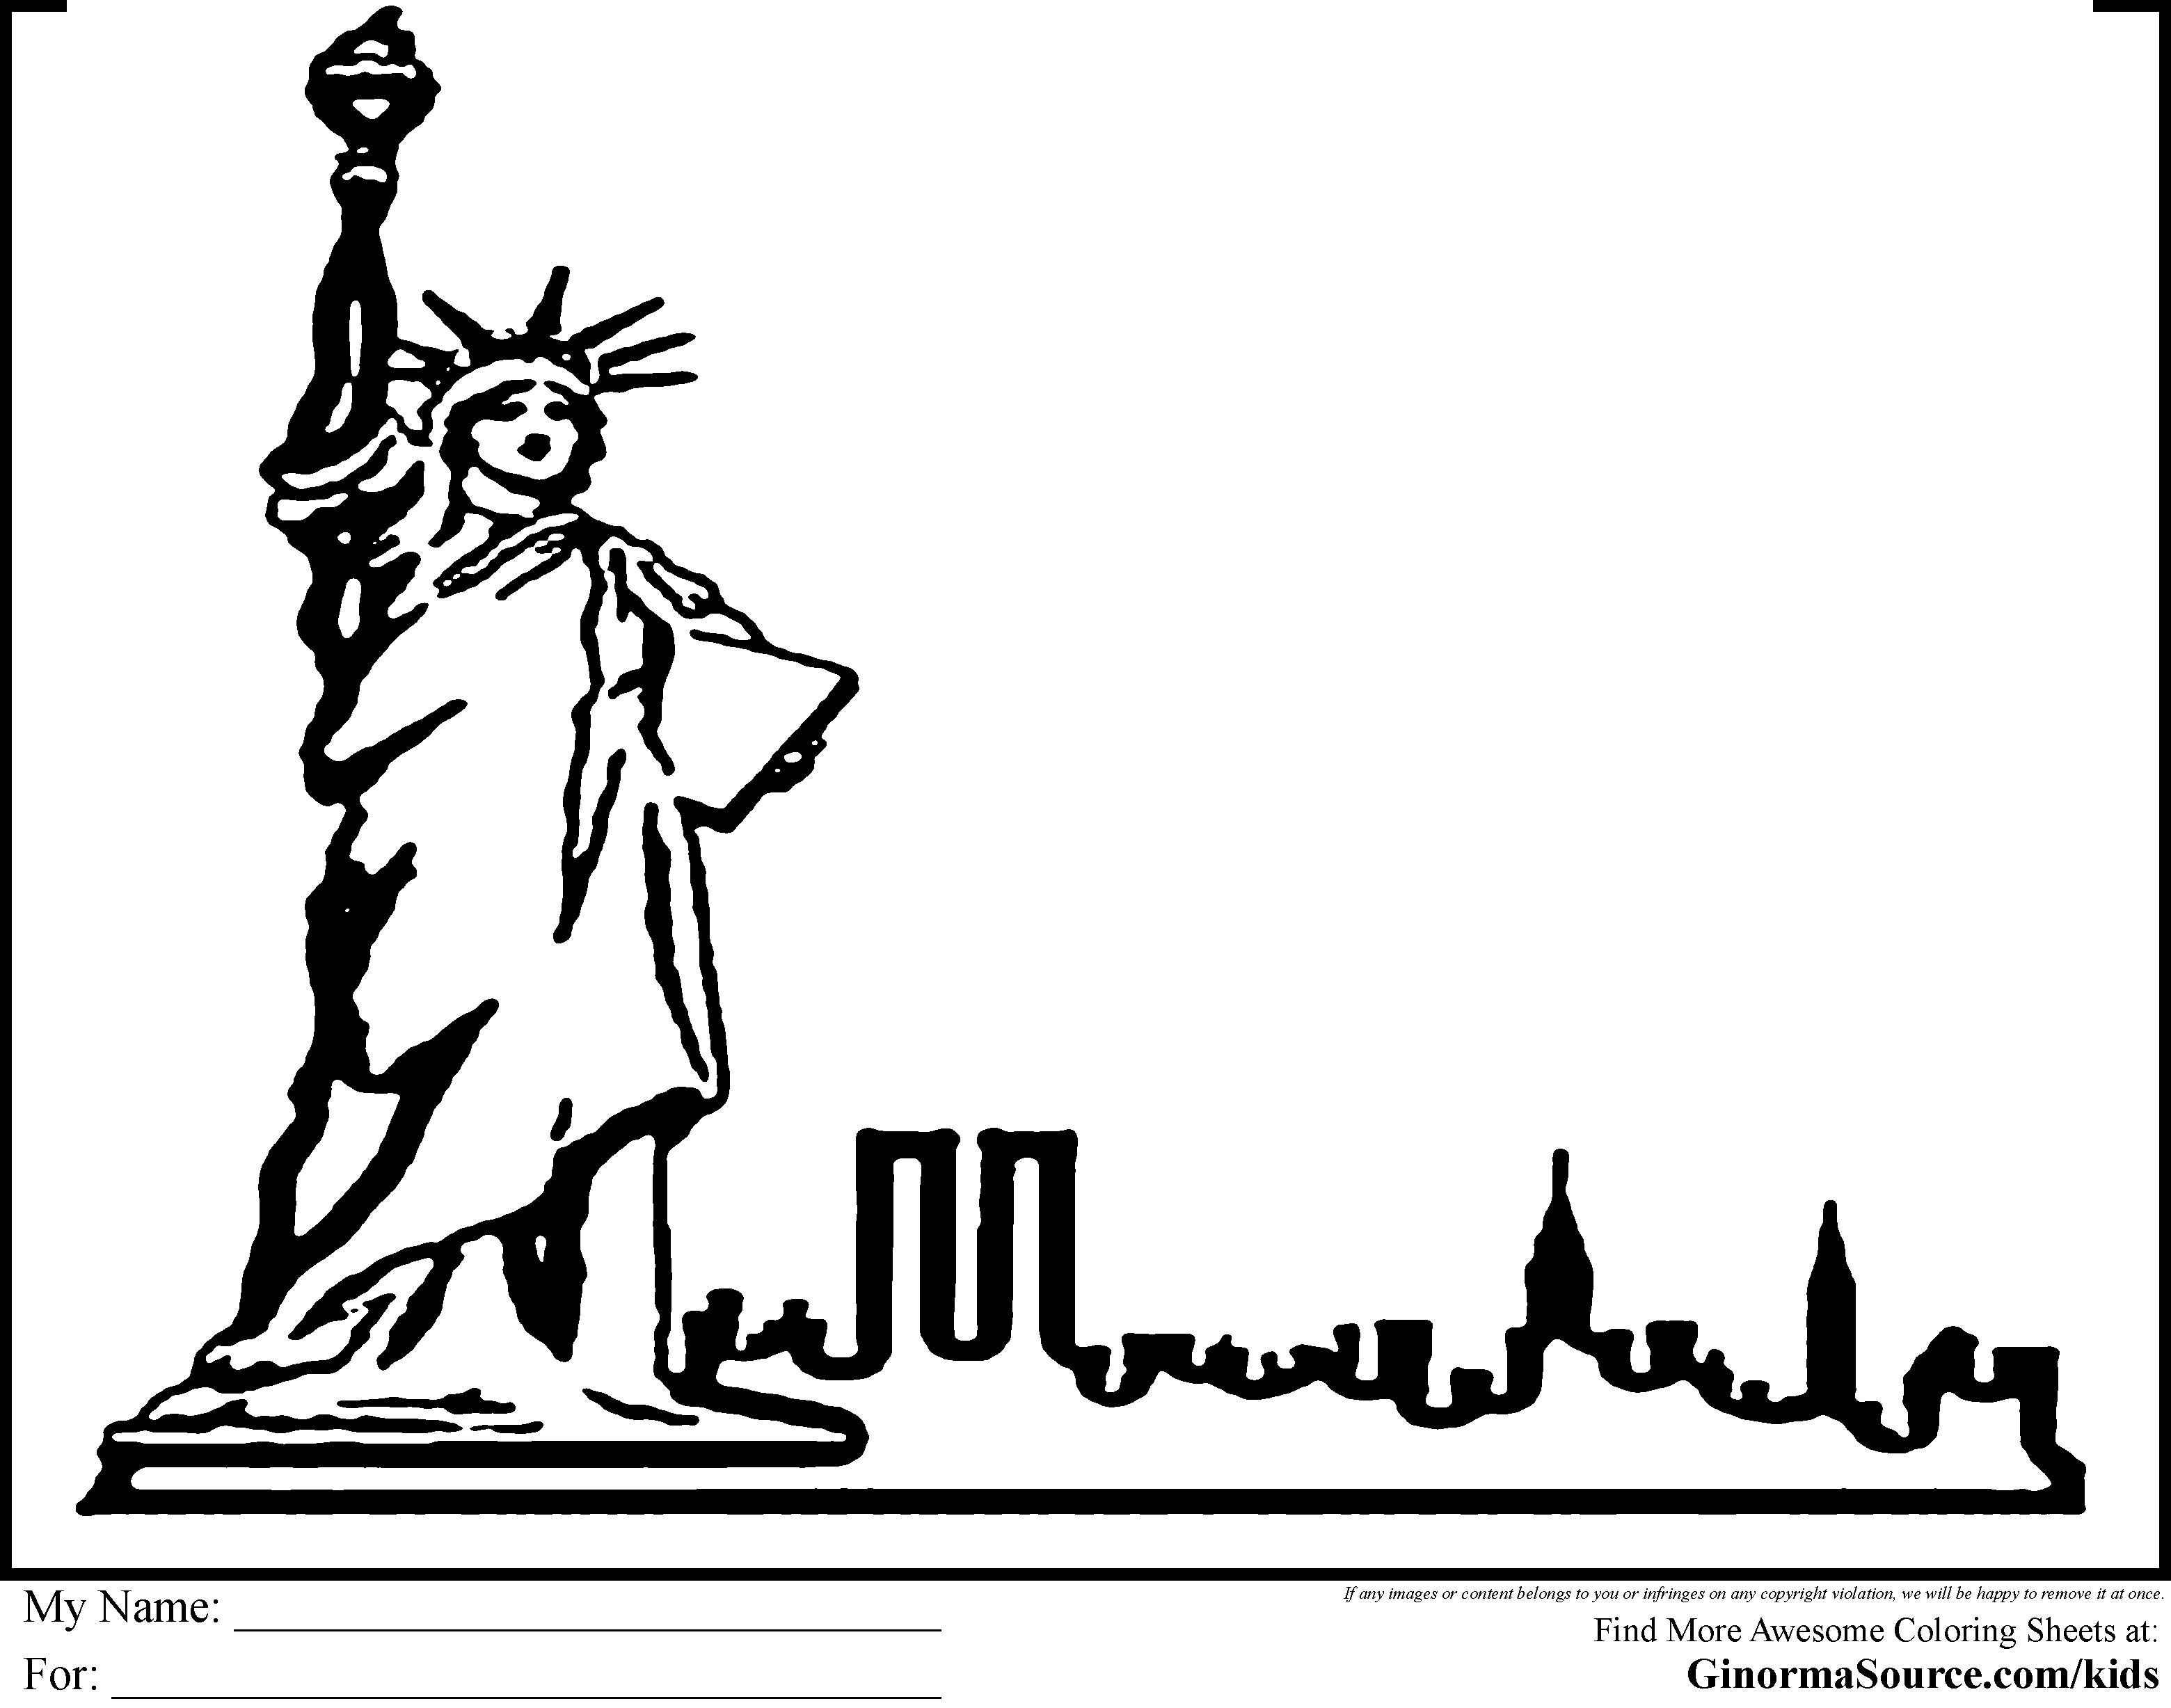 New York Yankees Coloring Awesome New York City Coloring Pages Best New York Skyline Coloring Page Coloring Pages Coloring Books Jesus Coloring Pages